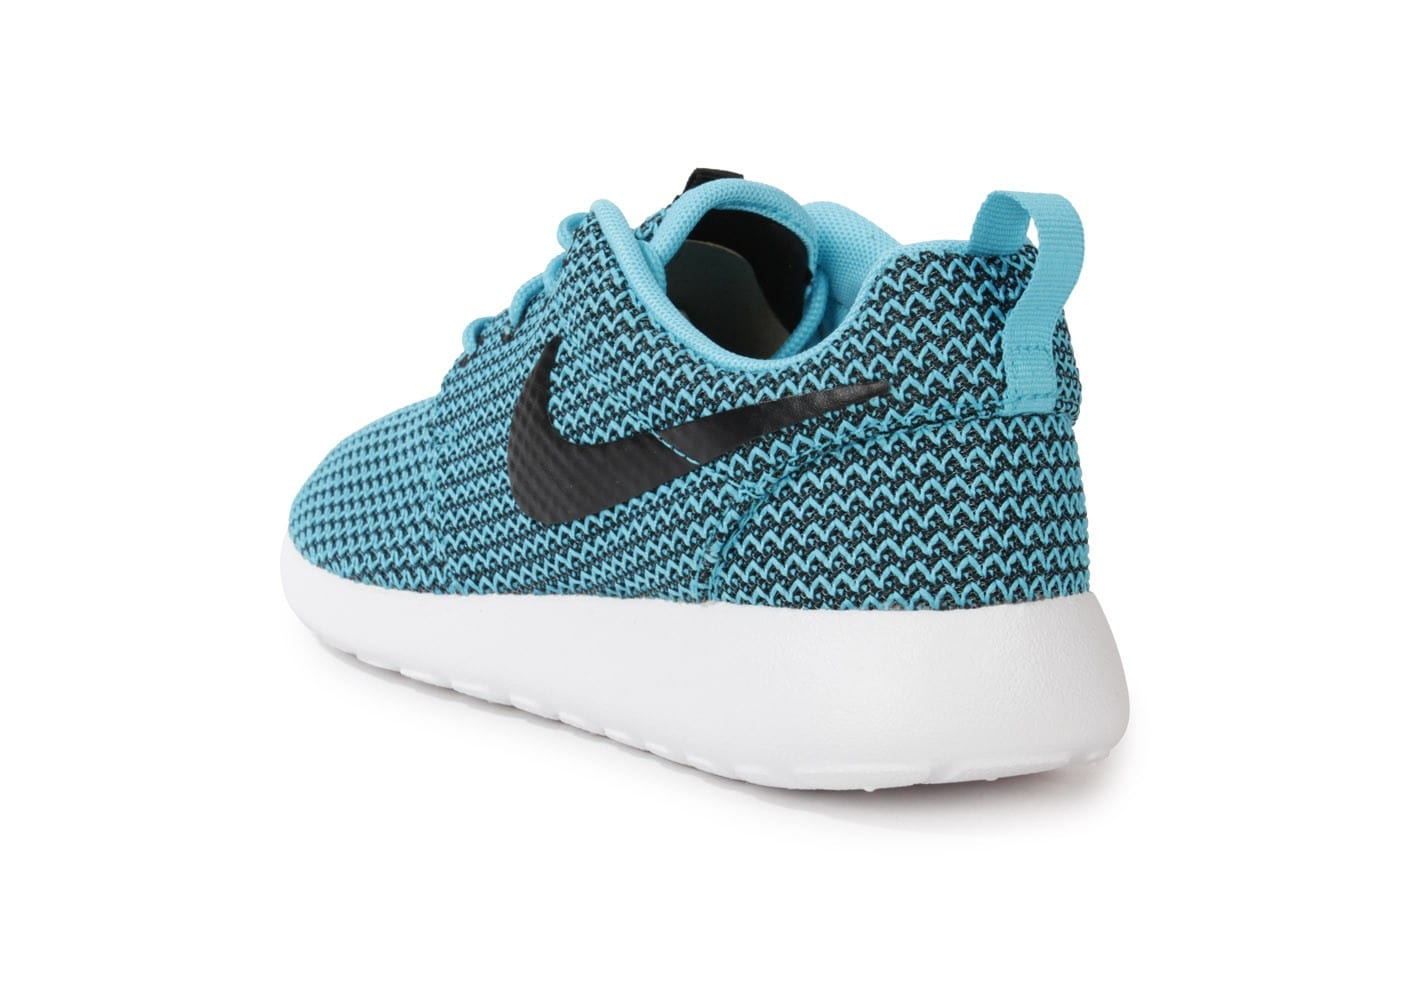 Nike Roshe Run Clear Water Chaussures Chaussures Chausport